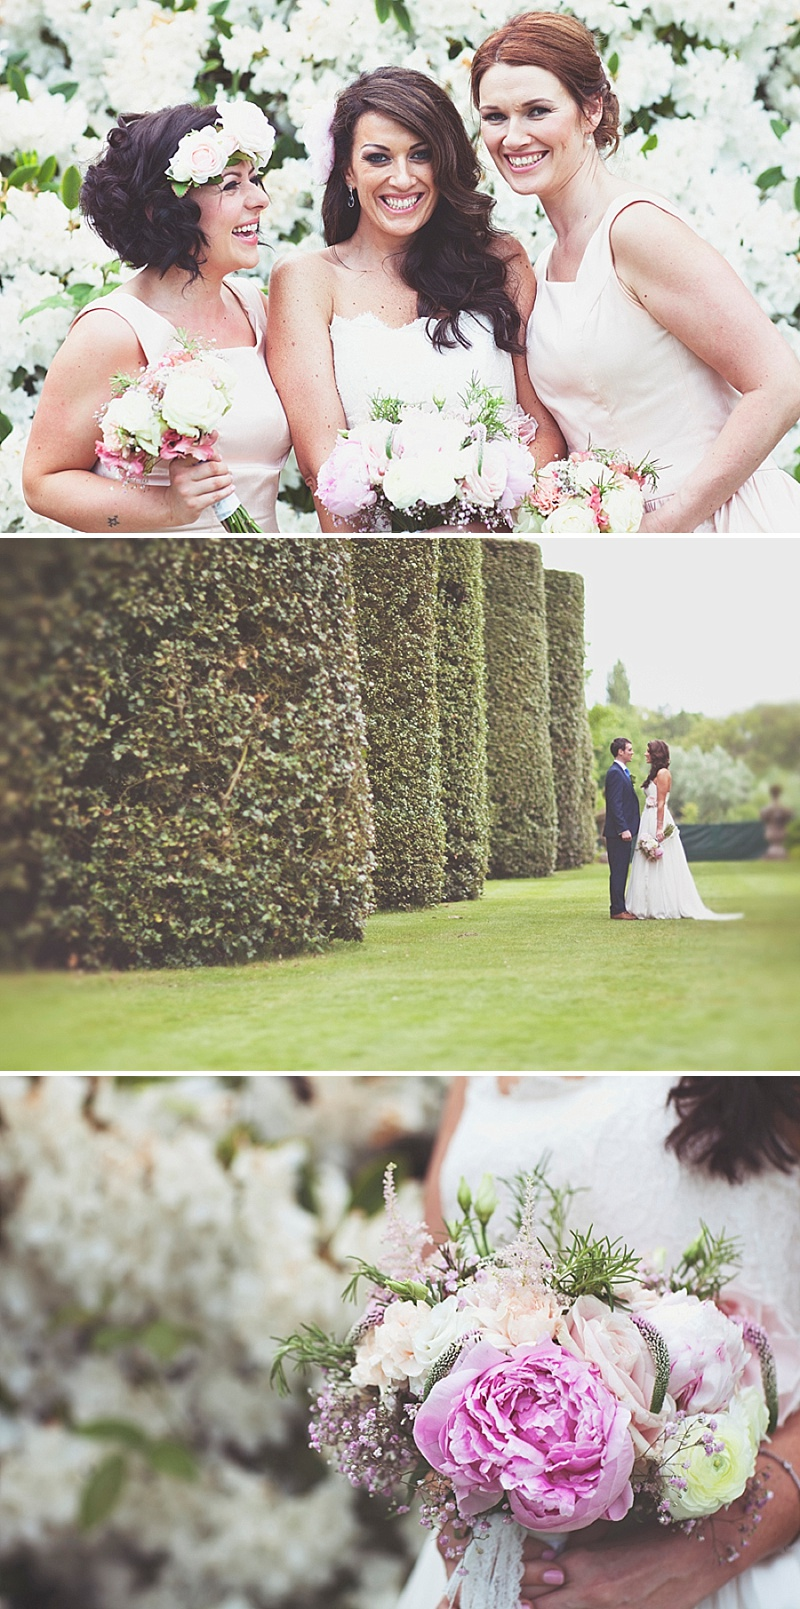 An Elegant Wedding At Arley Hall Gardens With Bride In Dita By Naomi Neoh and Groom In Blue Suit From Next With A Vintage London Bus And Images From On Love And Photography 1